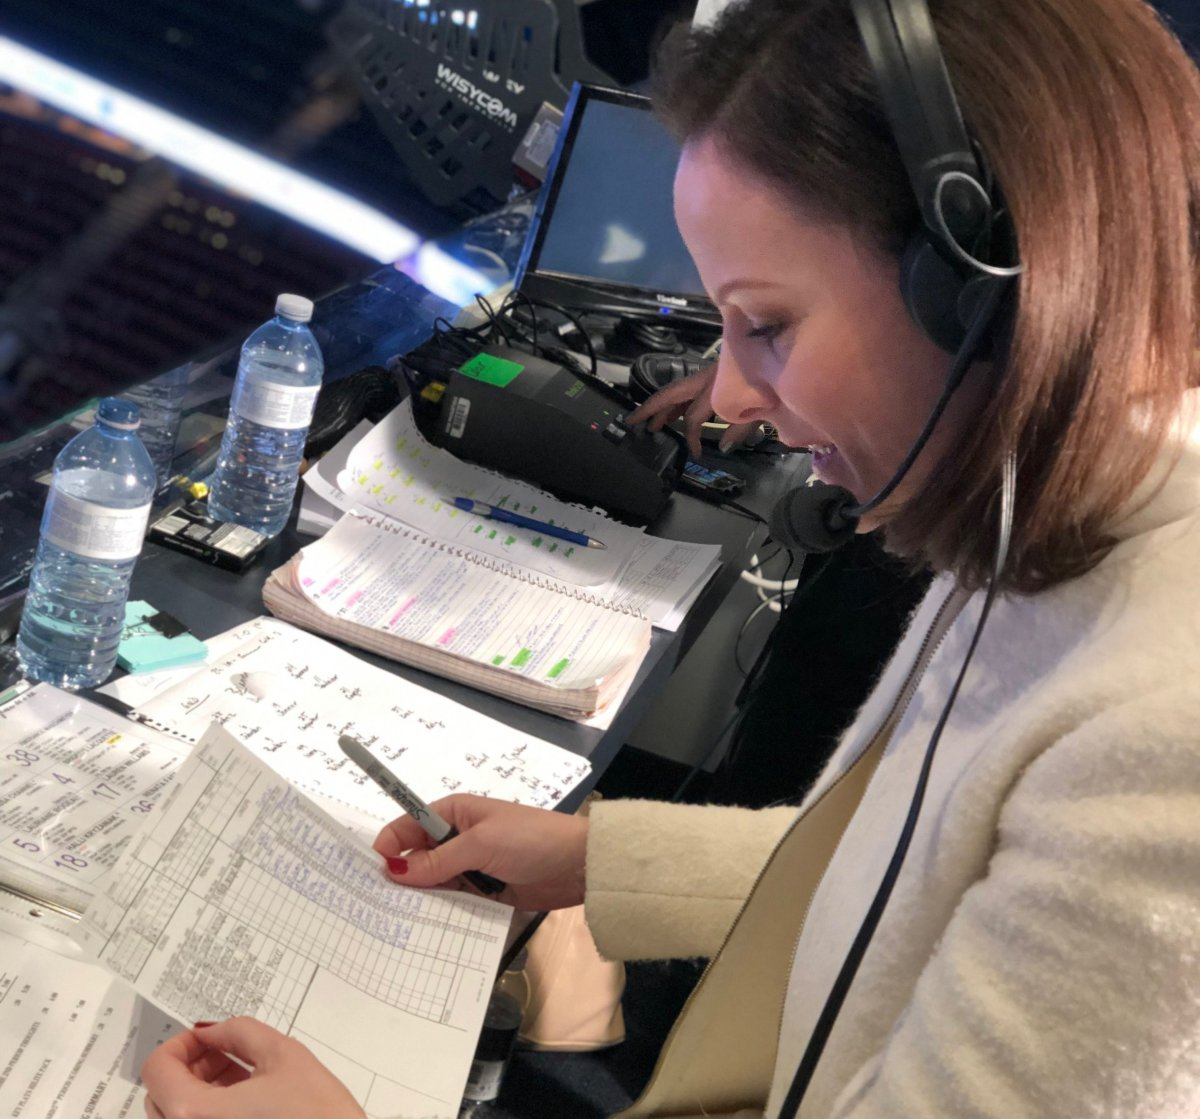 680 CJOB Hockey Analyst and Rogers Sportsnet Play by Play Broadcaster Leah Hextall recapping the scoring plays of the CWHL All Star Game at Scotiabank Arena in Toronto. Supplied Photo .